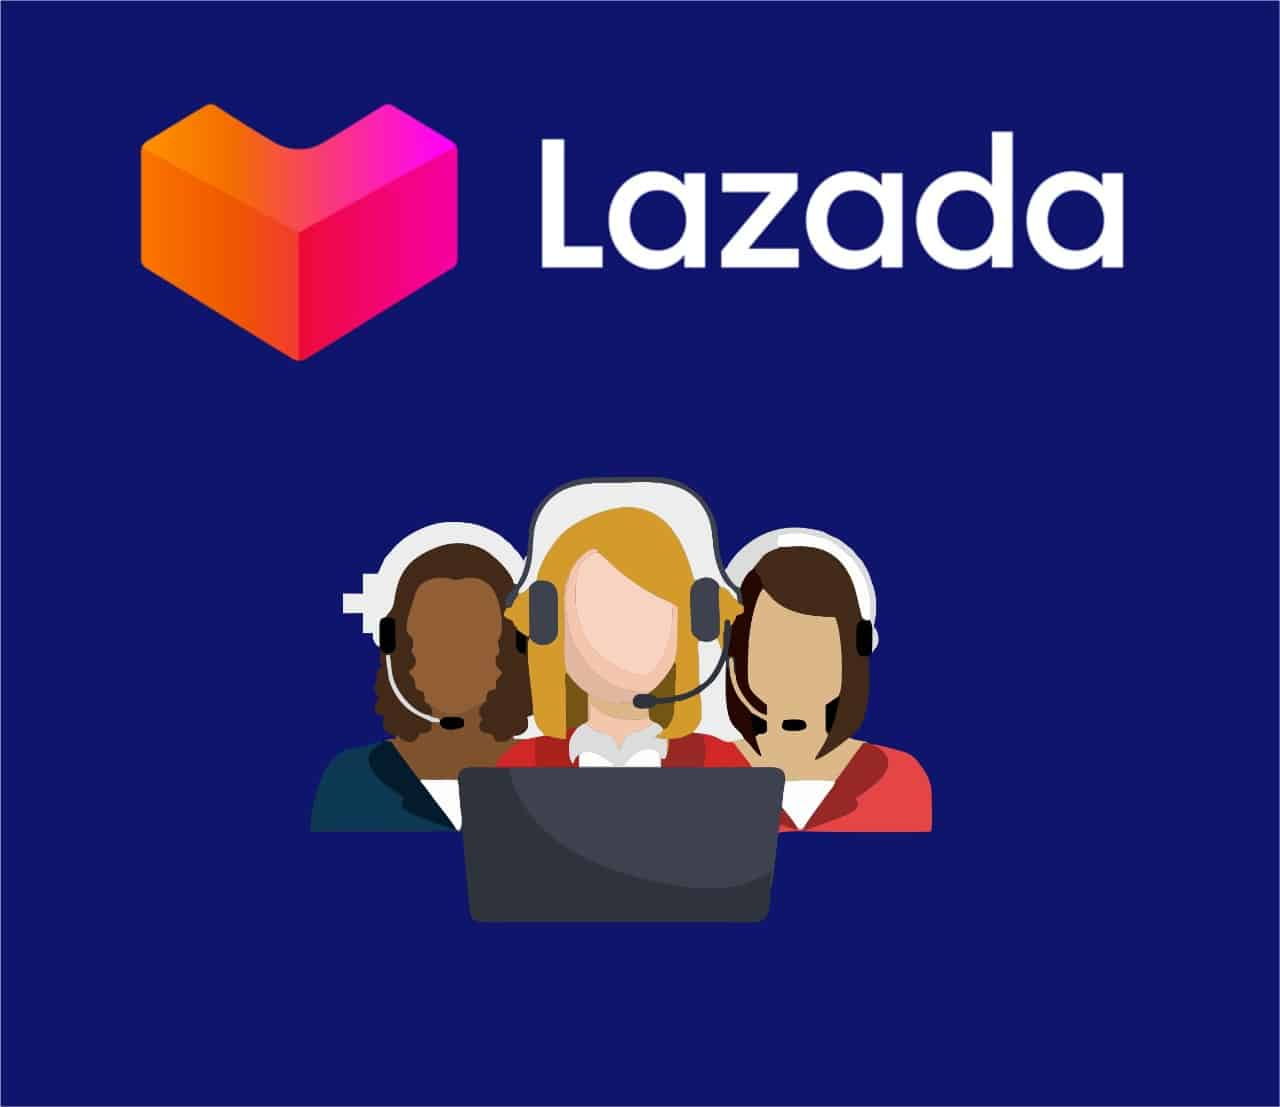 Call Center Lazada Pusat Telepon Alamat Email Medsos 24 Jam